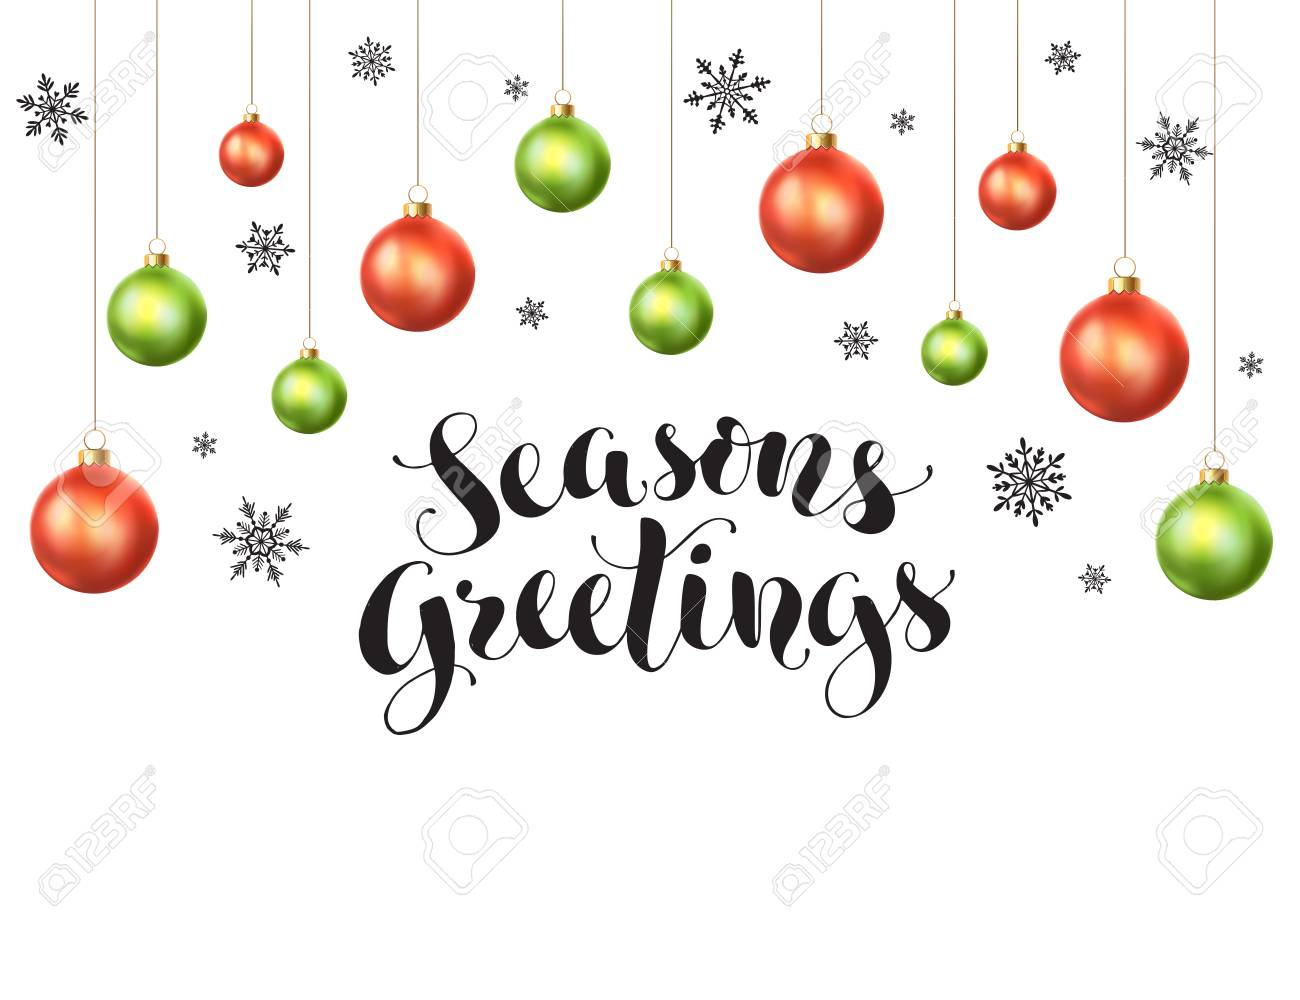 Seasons greetings card vector template humorous christmas cards happy holidays greeting card template modern new year lettering 67516405 happy holidays greeting card template modern new year lettering with snowflakes ans kristyandbryce Image collections